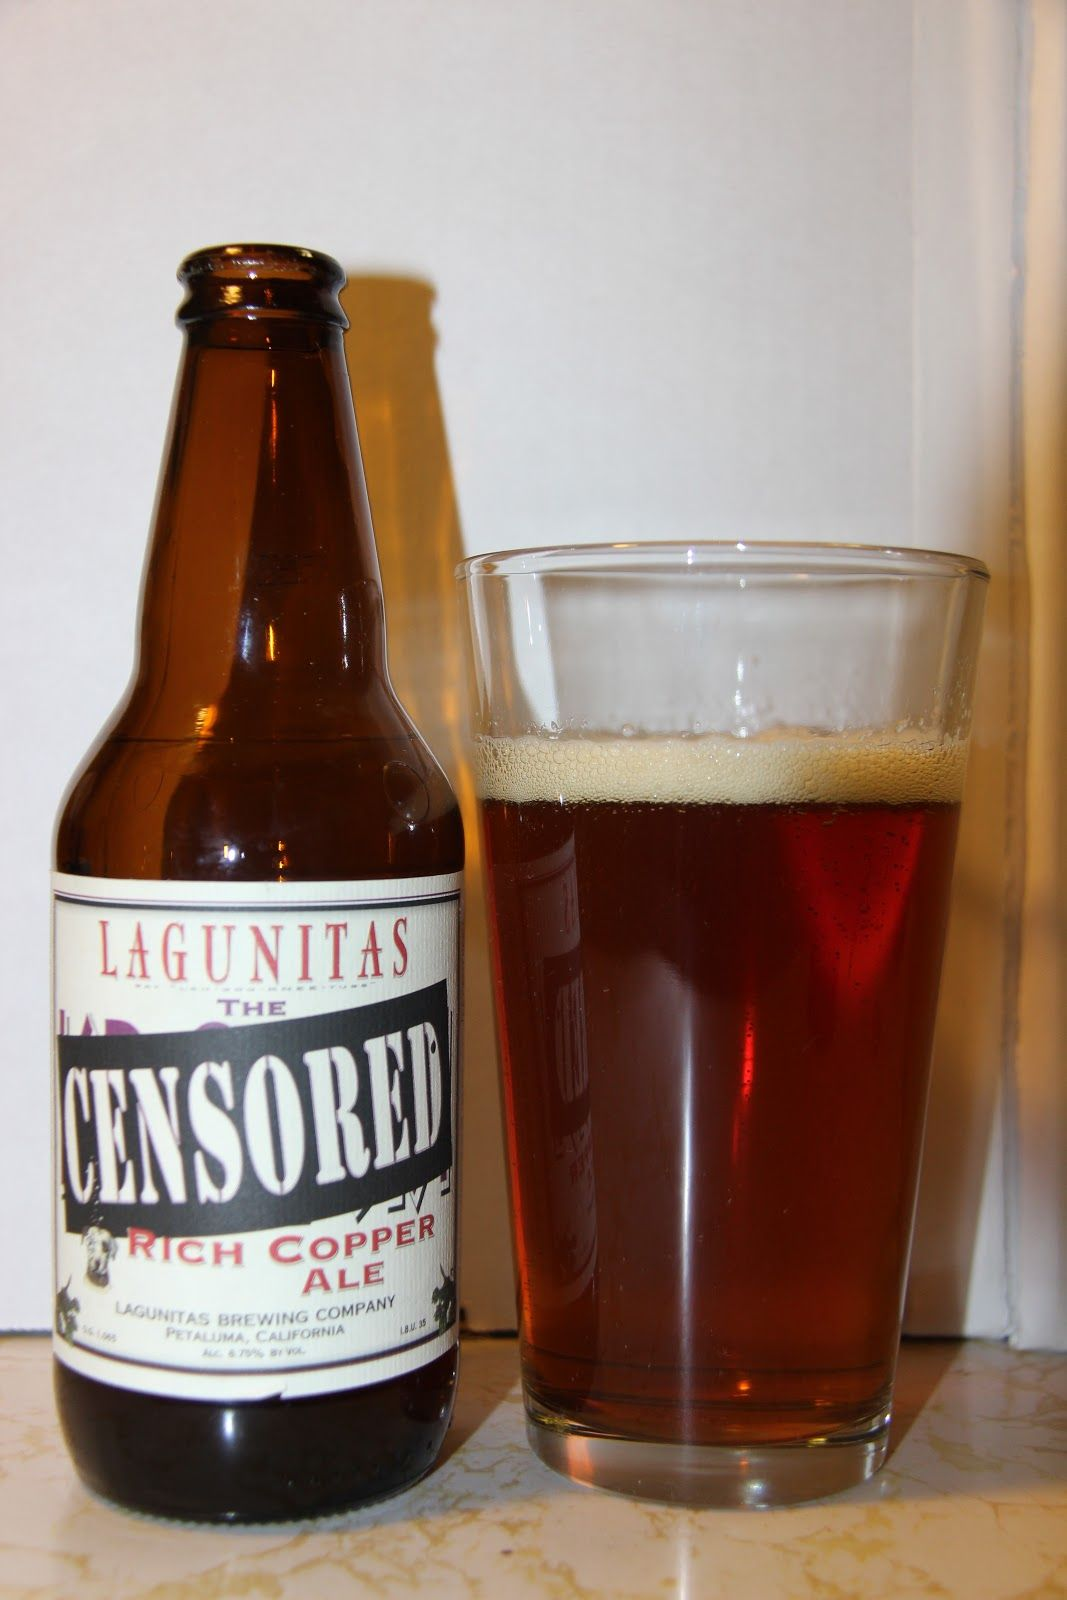 Down The Hatch: Lagunitas Brewing Company's Censored Rich Copper Ale